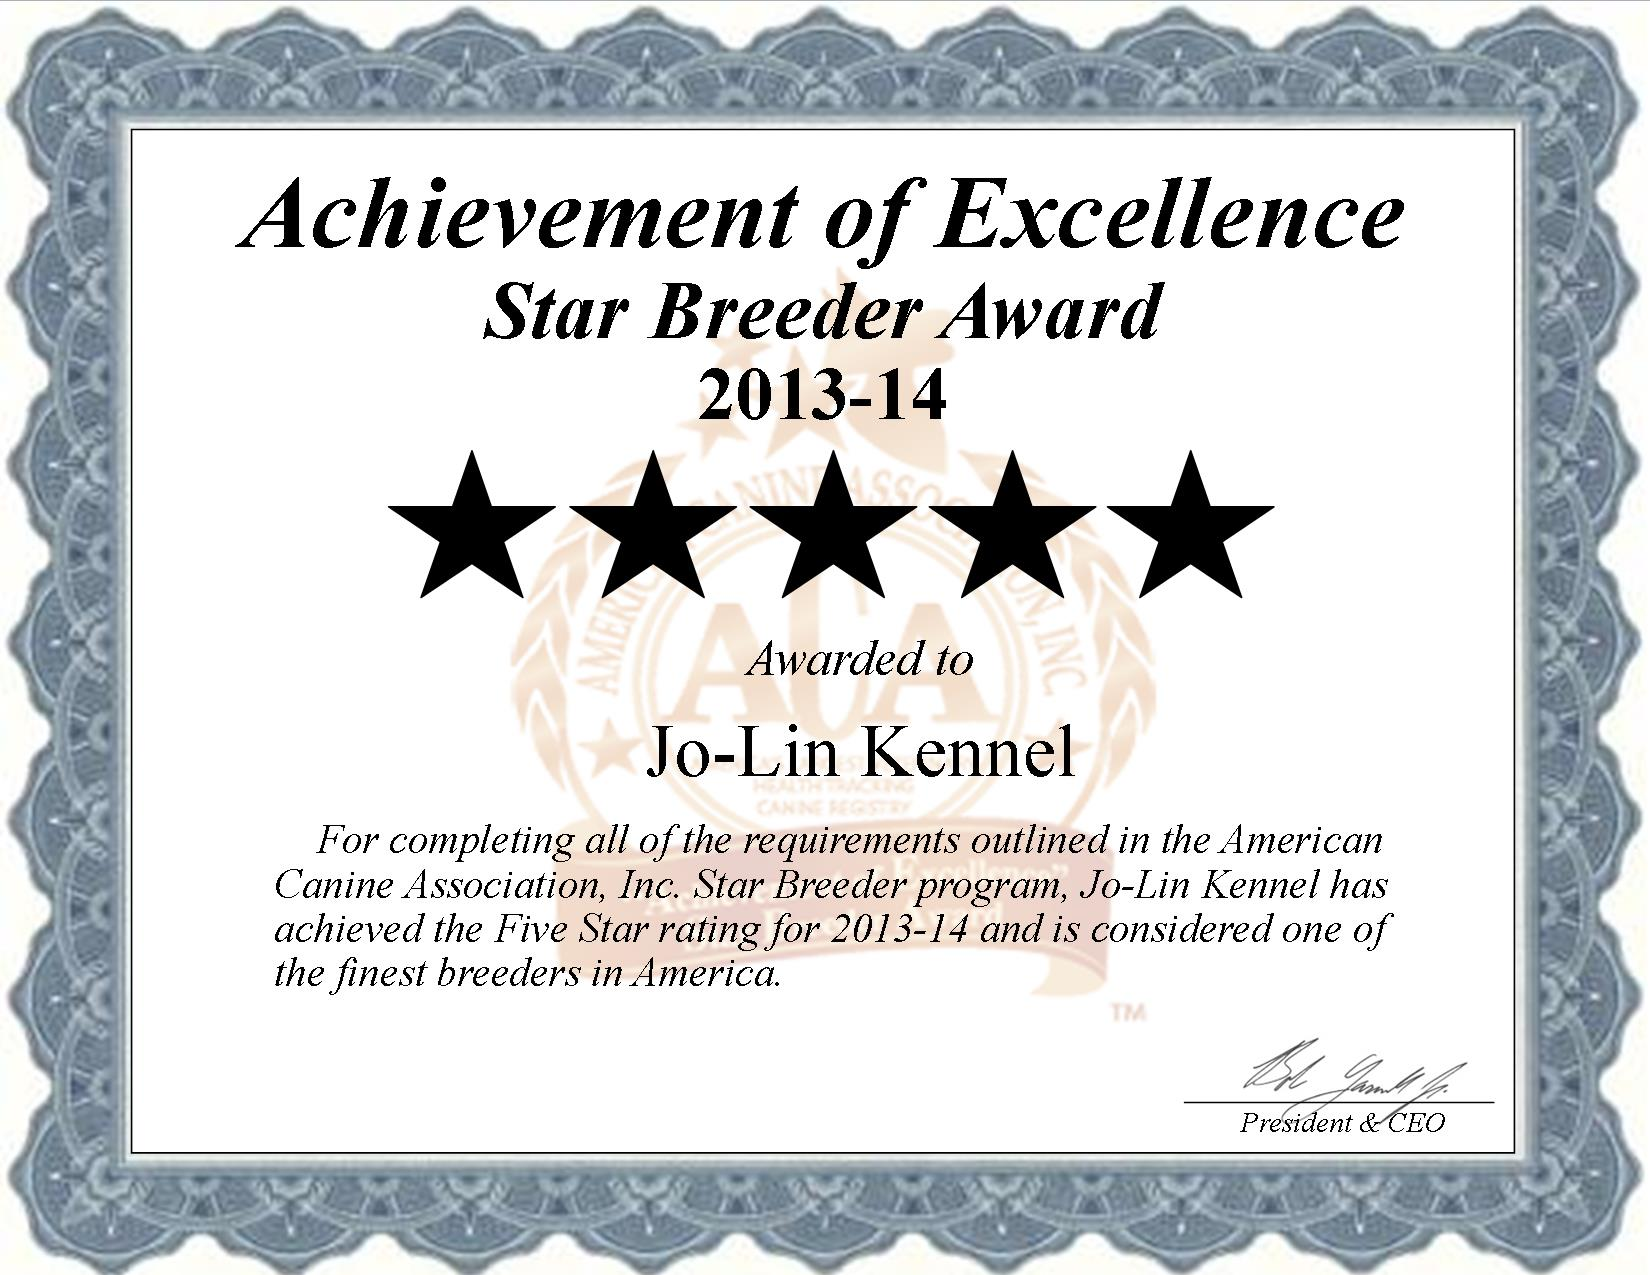 Jo-Lin, Kennel,Jo-Lin Kennel, Kennel, breeder, star breeder, aca, star breeder, 5 star, Bechtelsville, pennsylvania, pa, dog, puppy, puppies, dog breeder, dog breeders, Pennsylvania breeder,Jo-Lin Kennel dog breeder, Jo-Lin, Jo-lin kennel